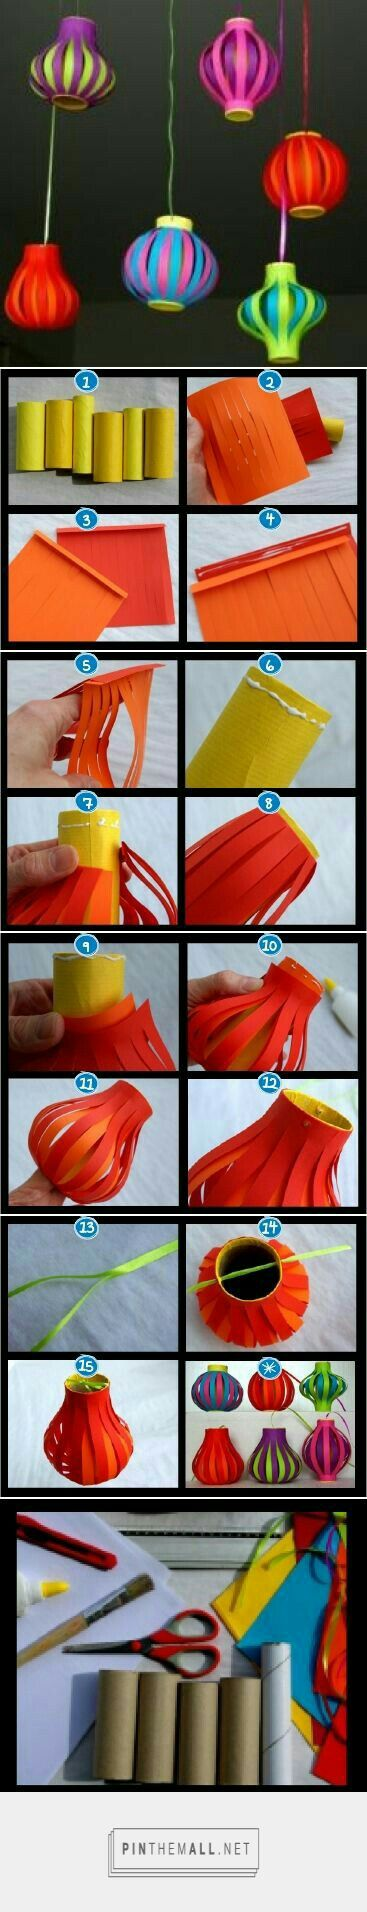 Clever use for toilet paper rolls and fun way to make lanterns